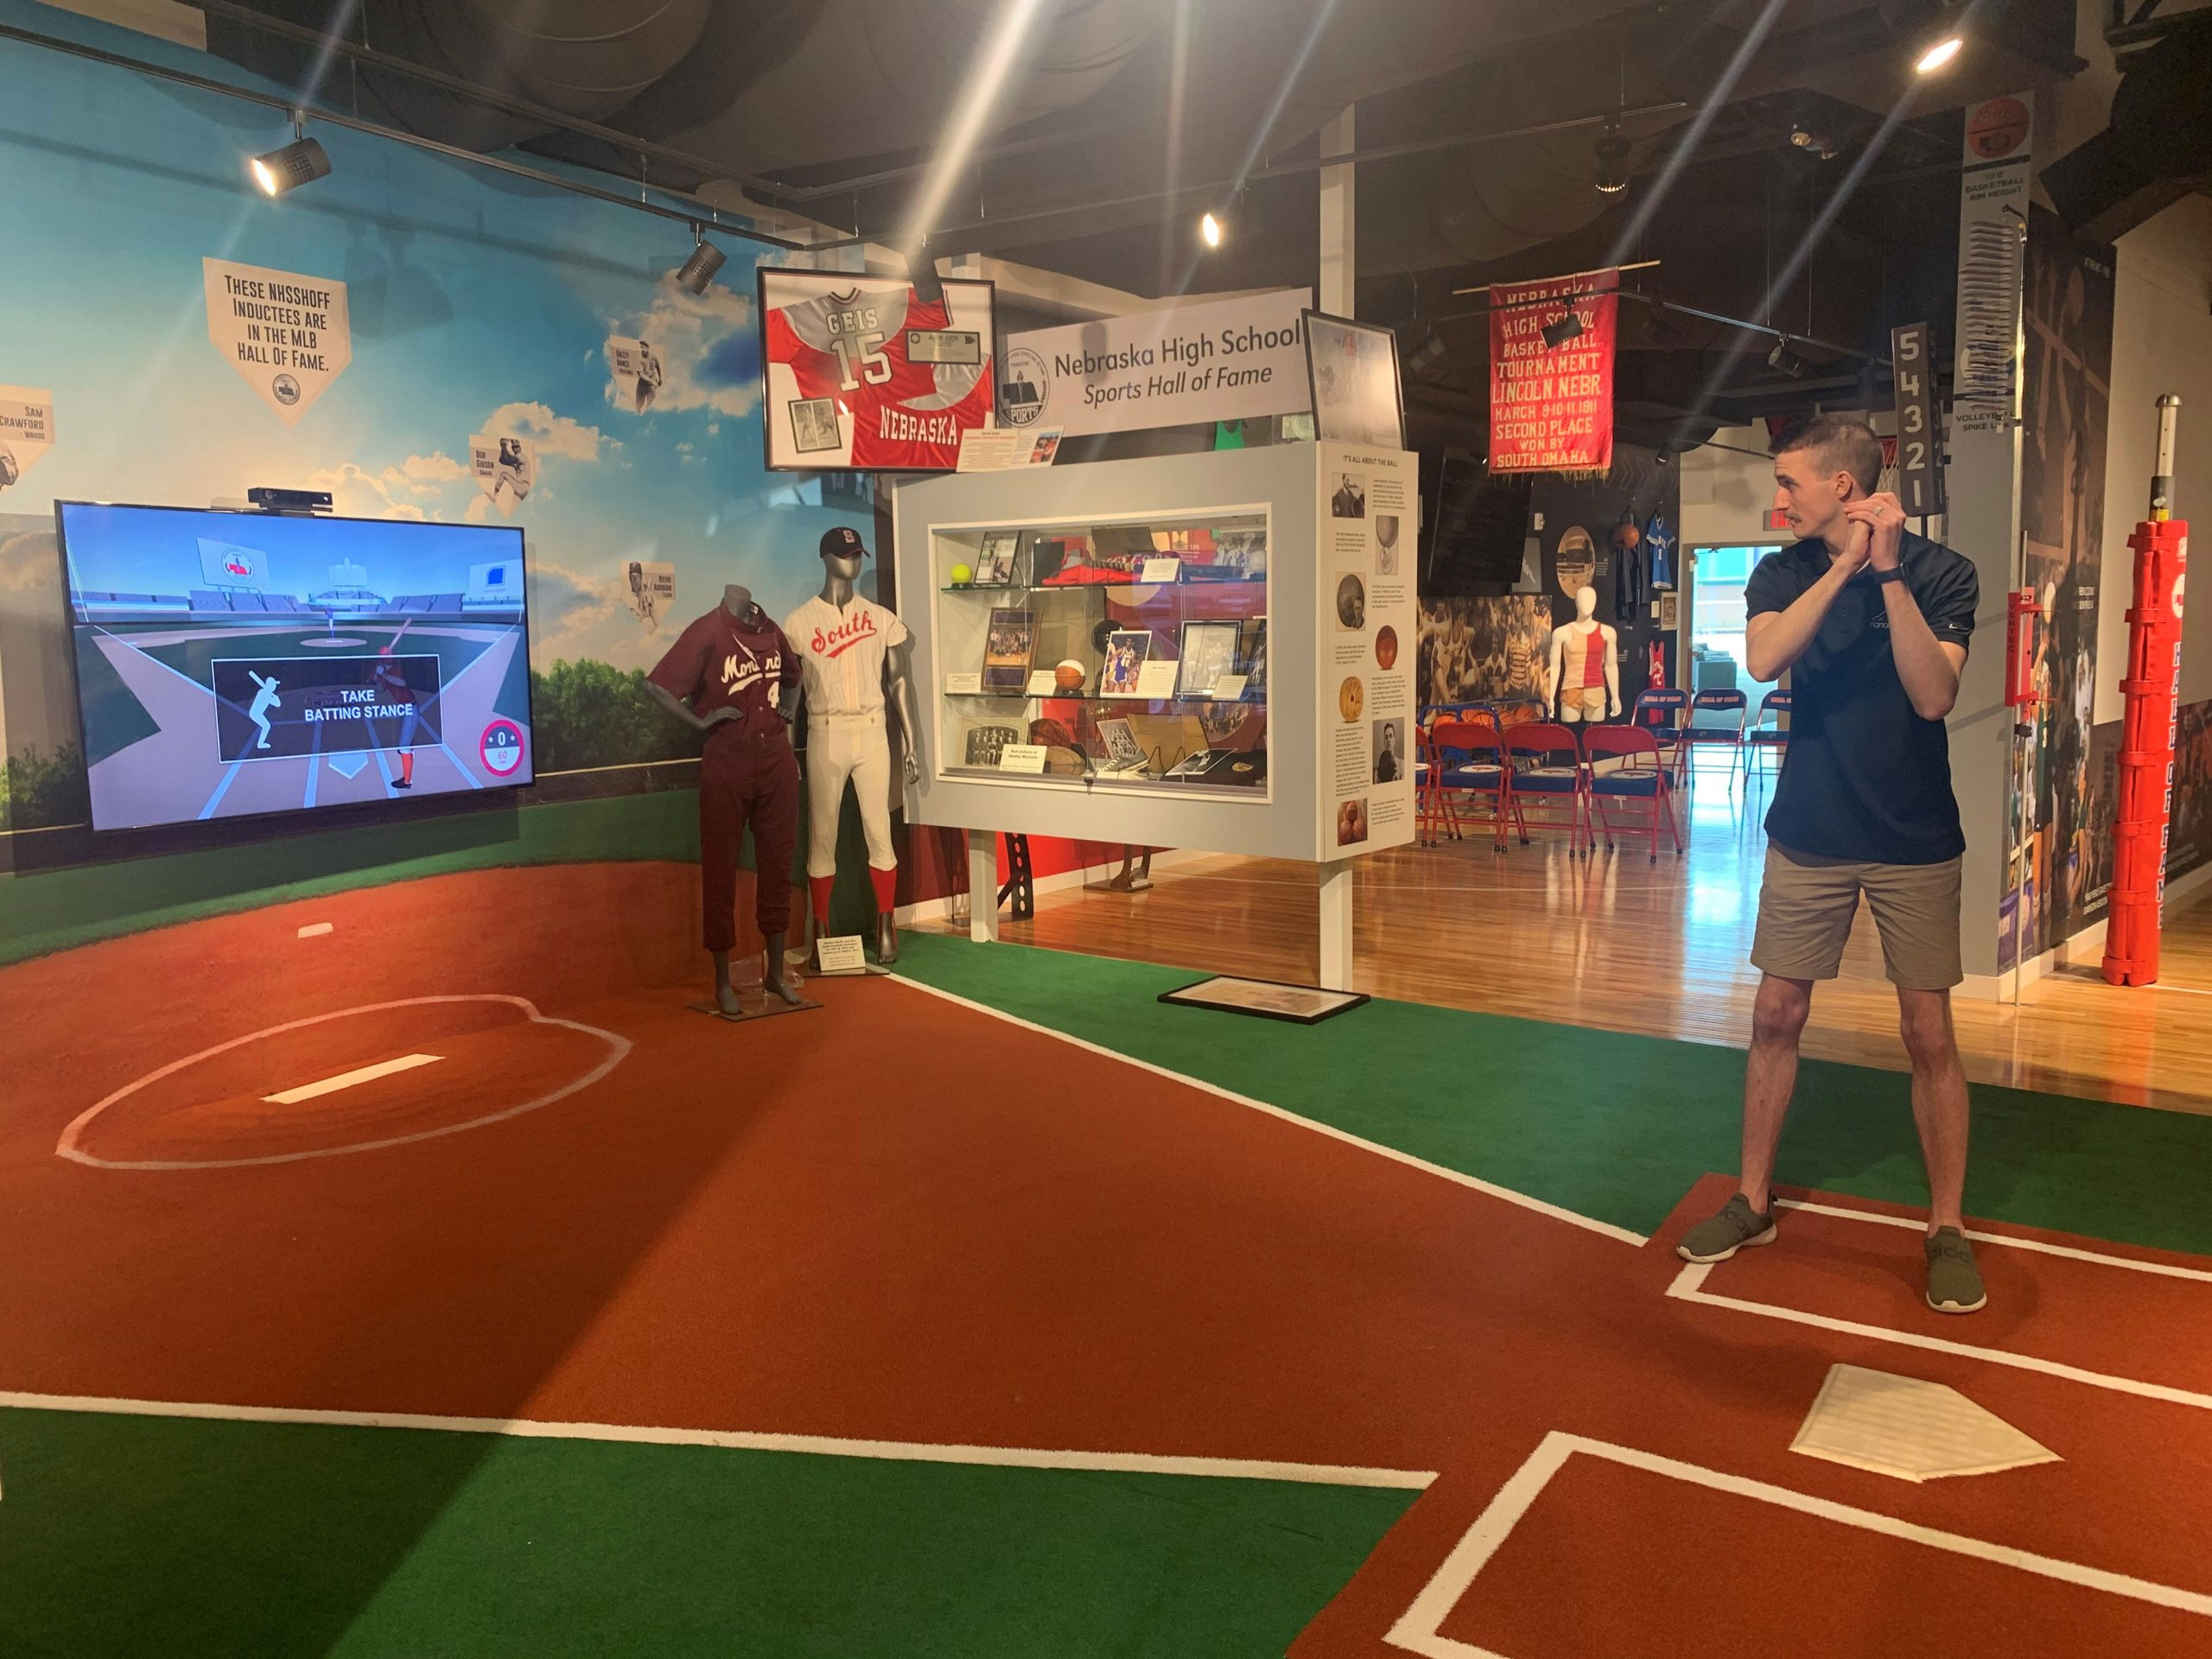 Interactive Baseball Game with Man Playing